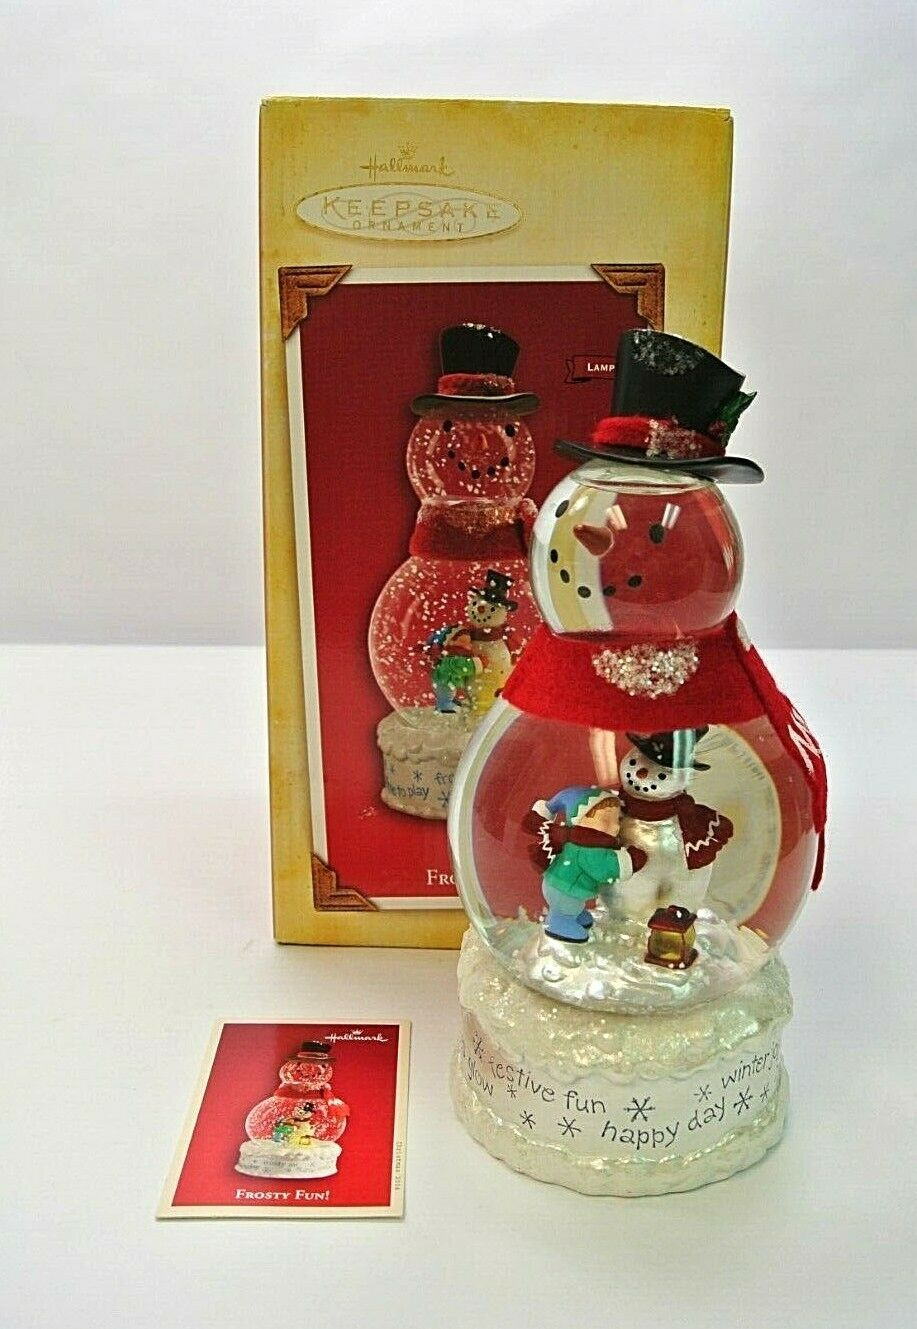 Primary image for 2004 Hallmark Keepsake Ornament Frosty Fun Light up Snow Globe